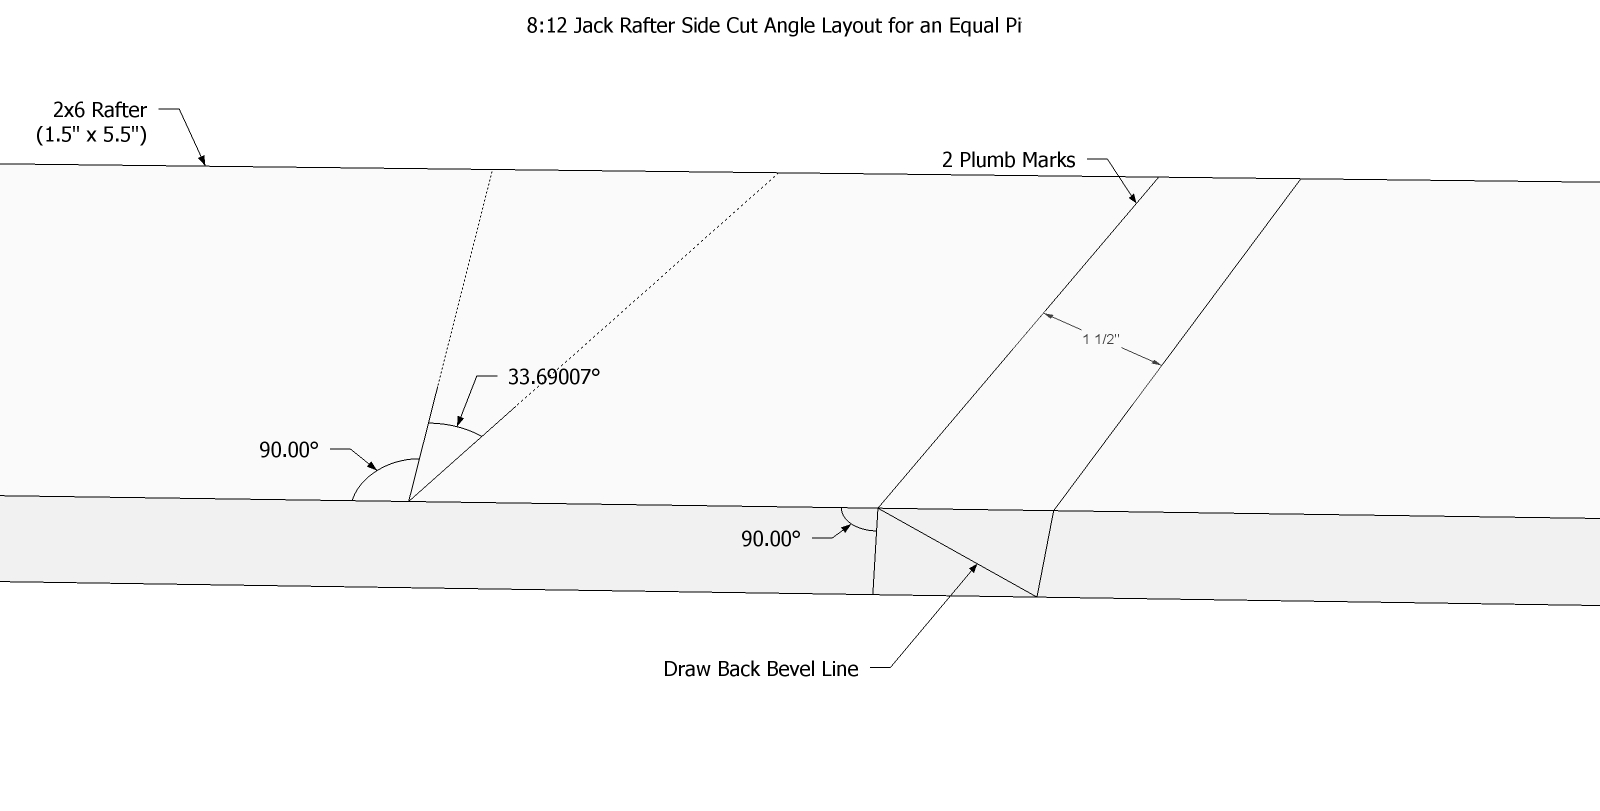 use a hand saw to cut along the plumb line back bevel line or use a saw set to 45 to cut the compound angle on the face of the jack